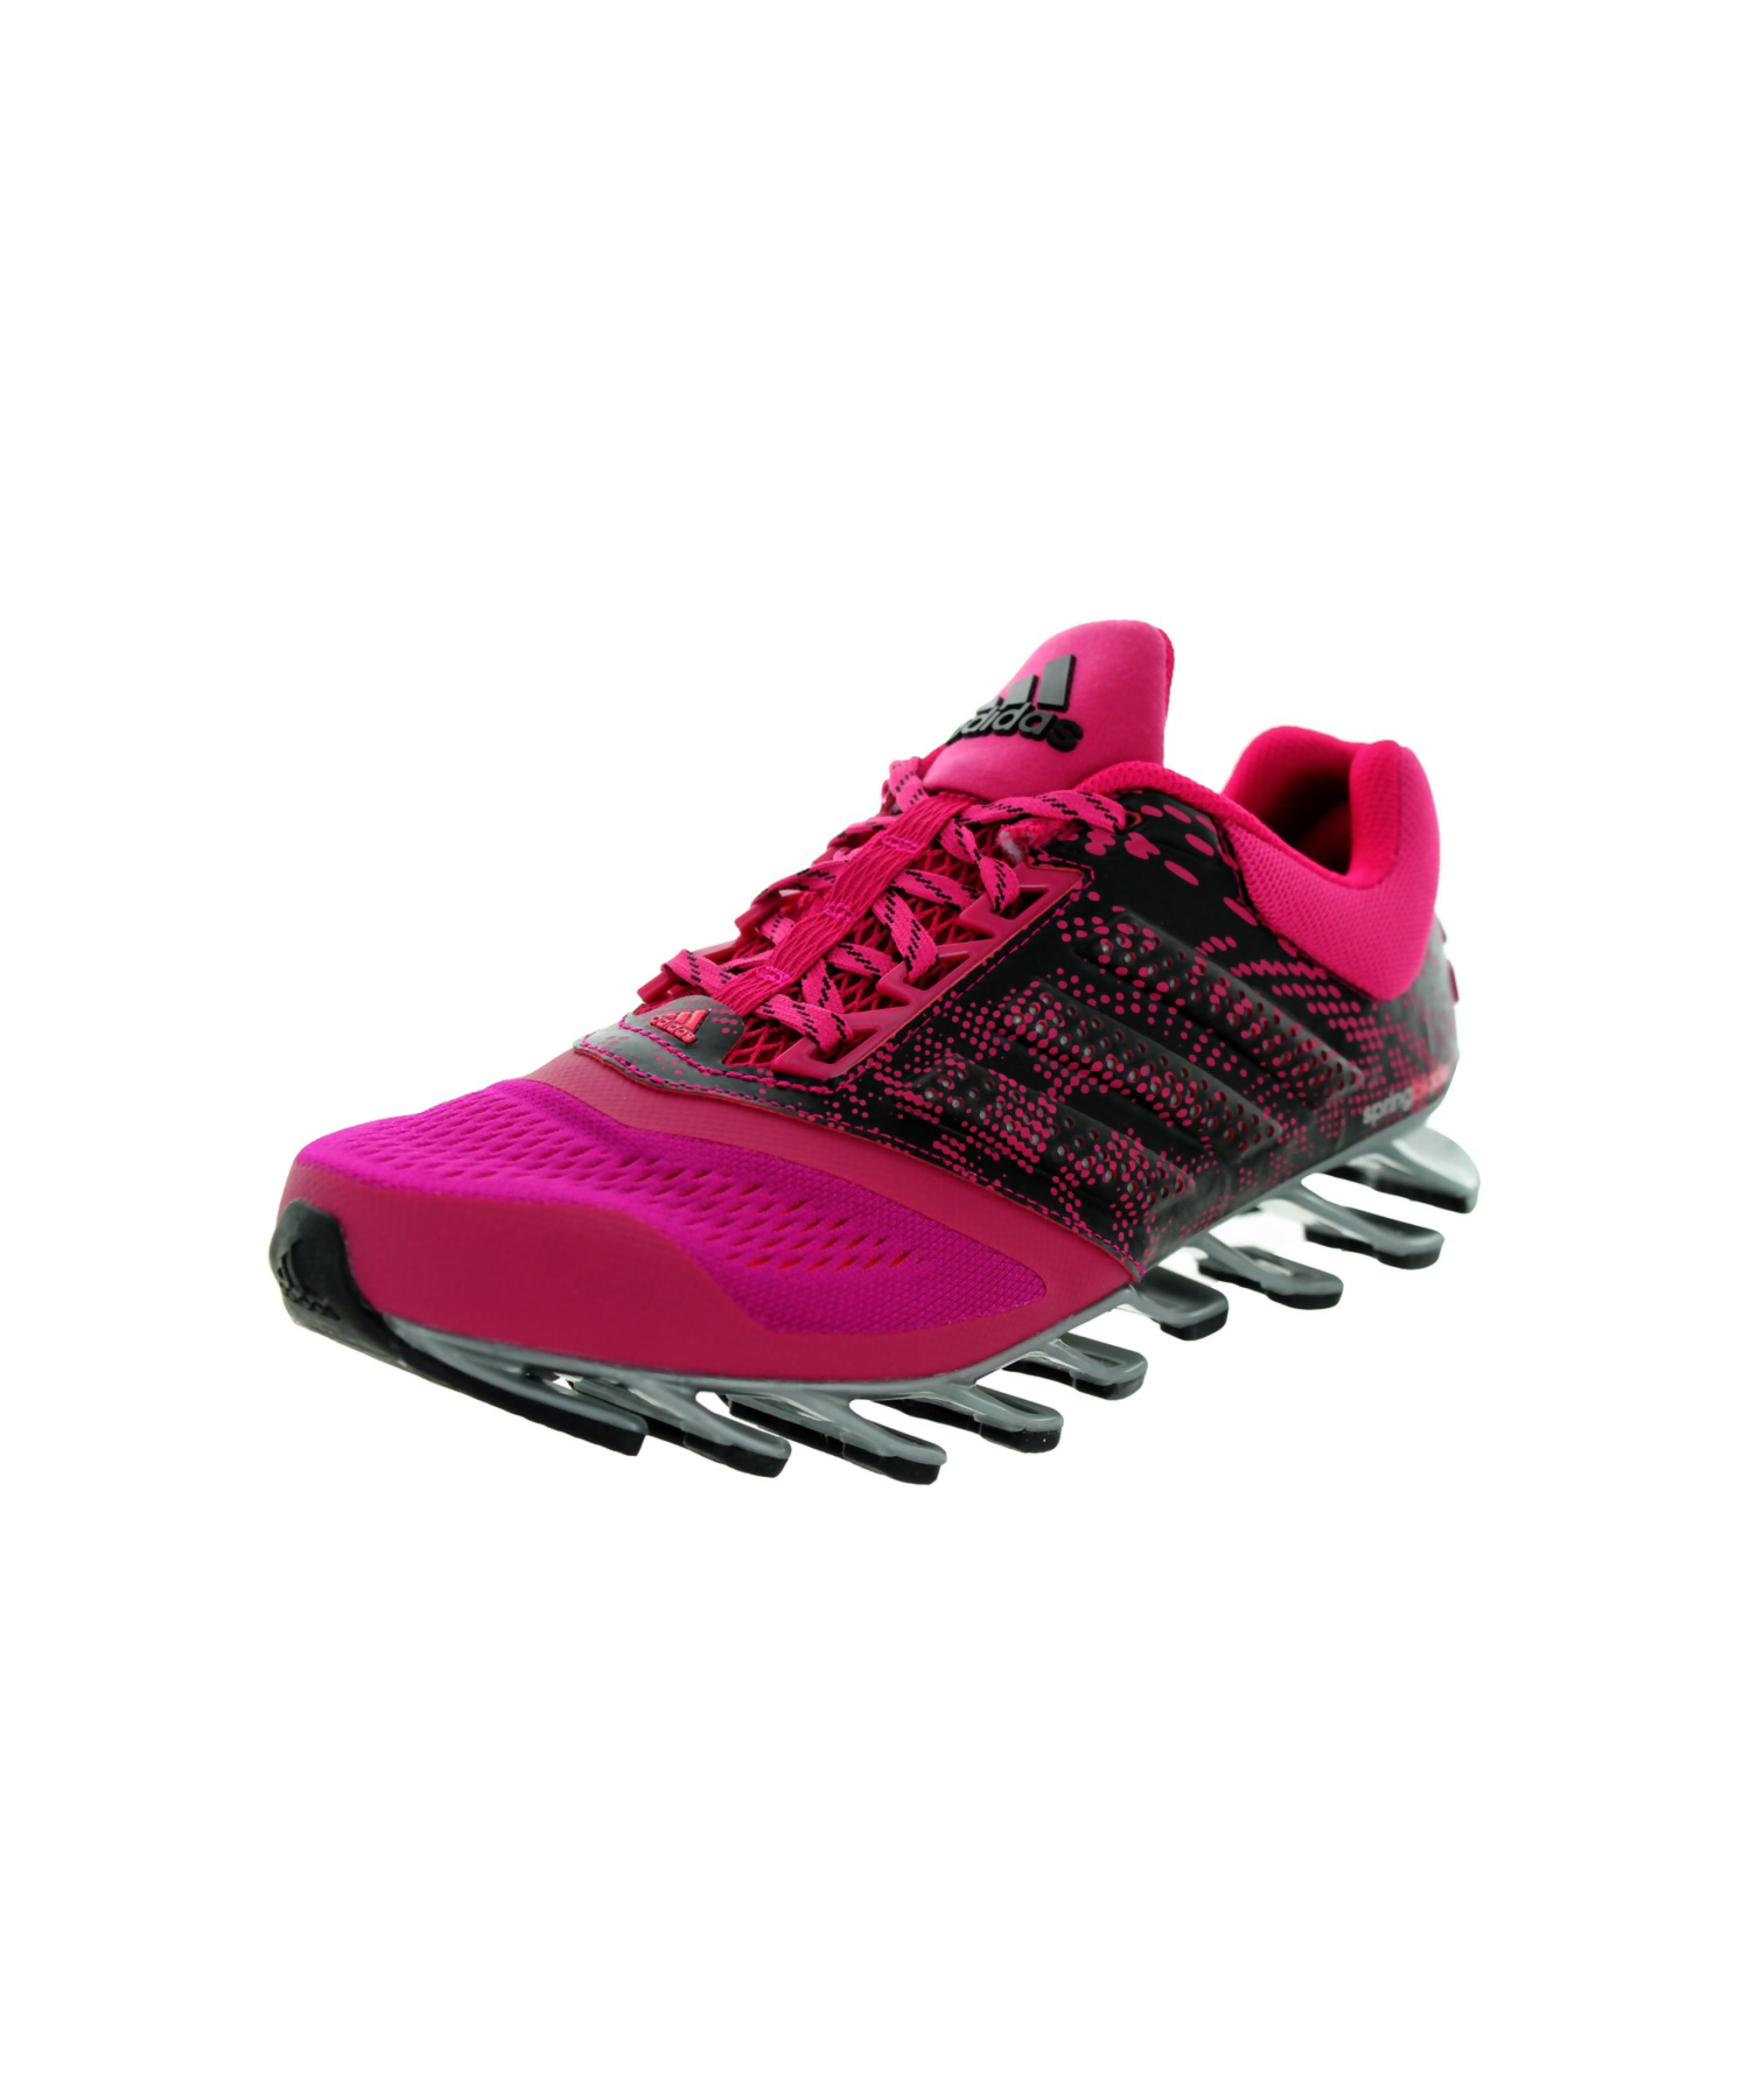 on sale 6413c 3e857 ADIDAS   Adidas Women s Springblade Drive 2 Running Shoe  Shoes  Sneakers   ADIDAS